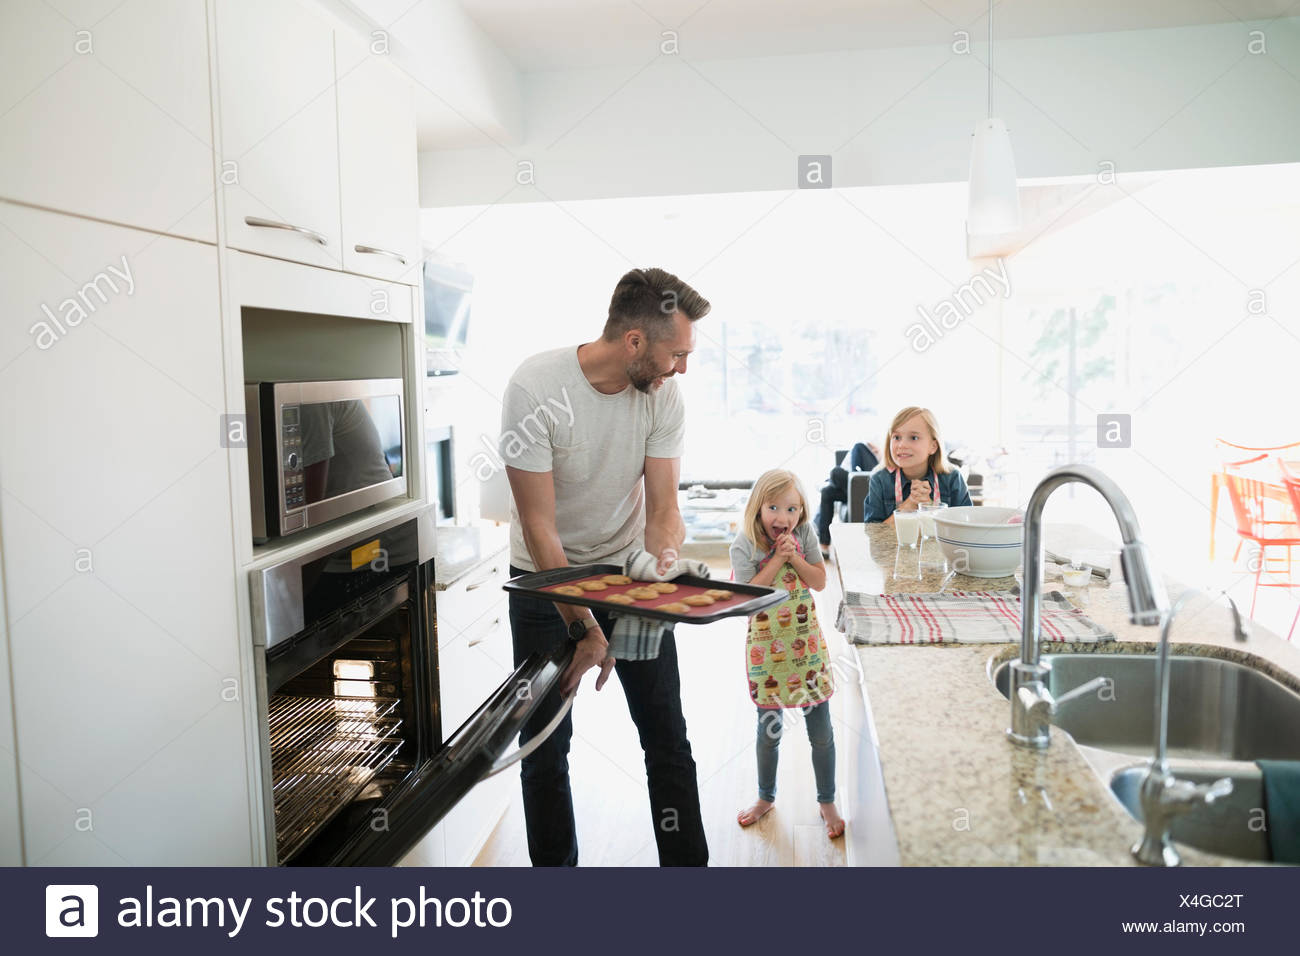 Father and daughters baking in kitchen - Stock Image